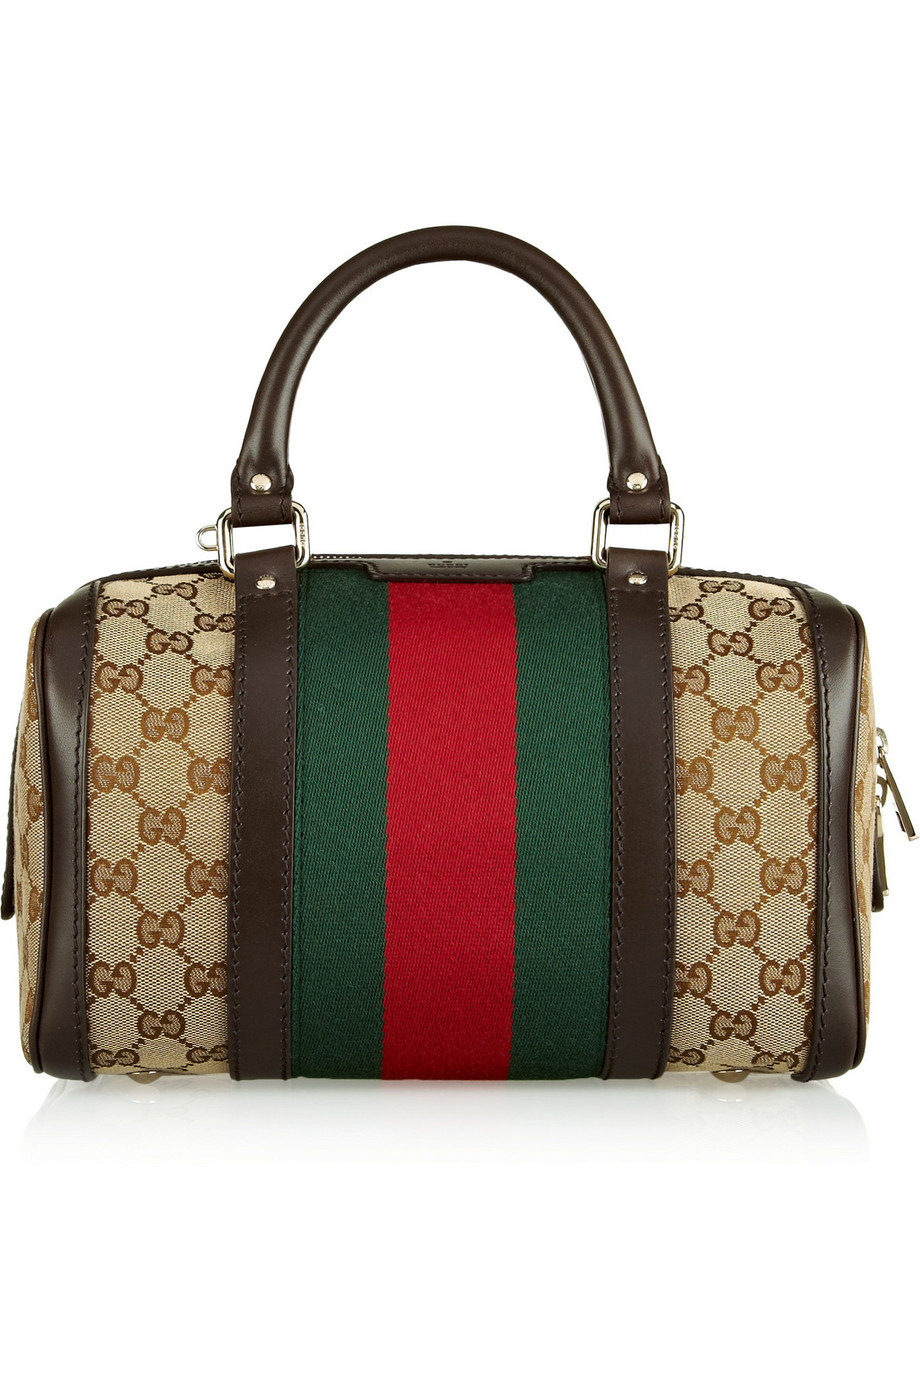 Gucci Vintage Web Small Monogrammed Canvas Tote, Brown, Women's